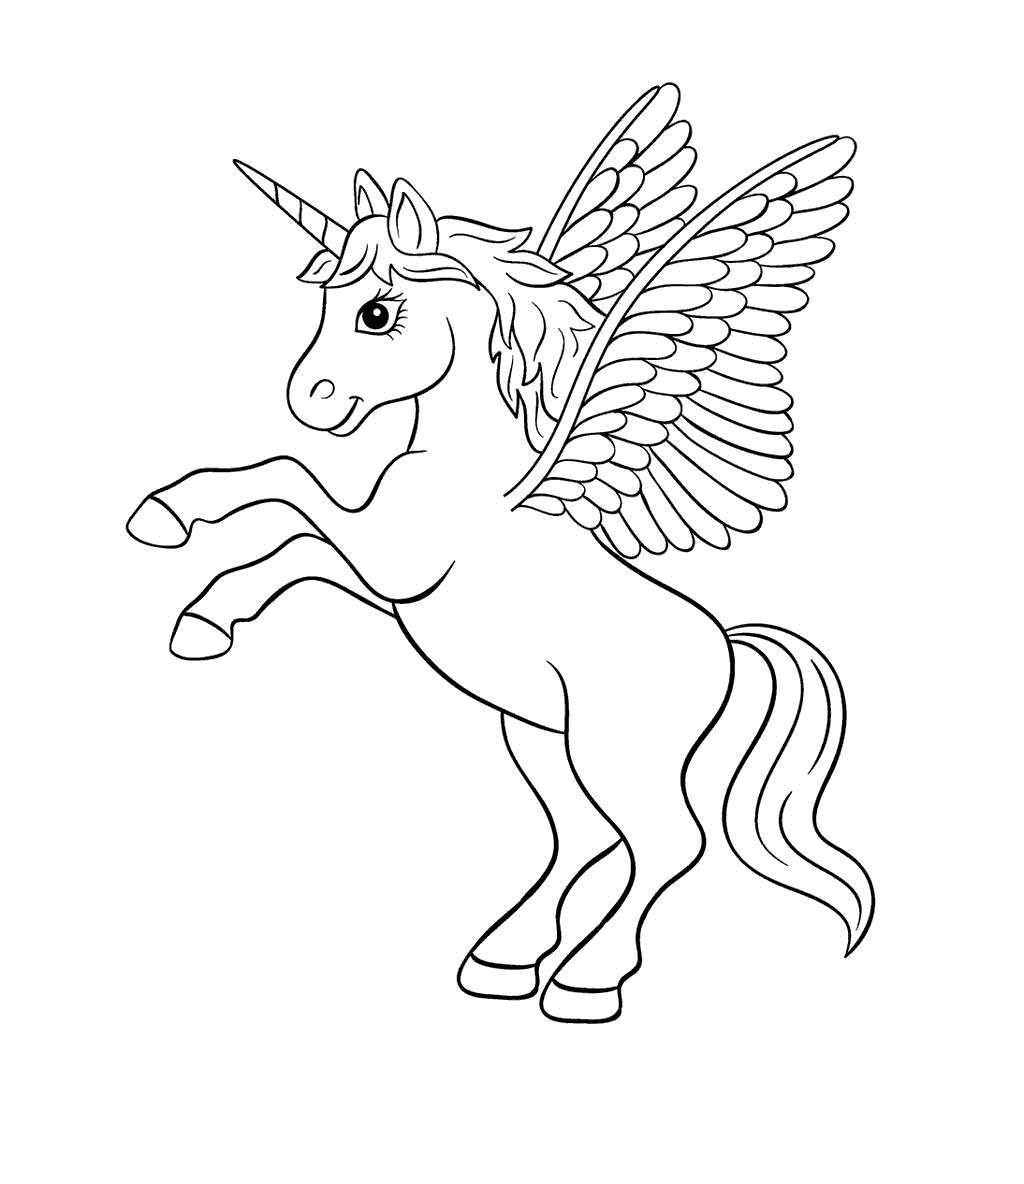 Free Unicorn Coloring Pages Kids Images printable